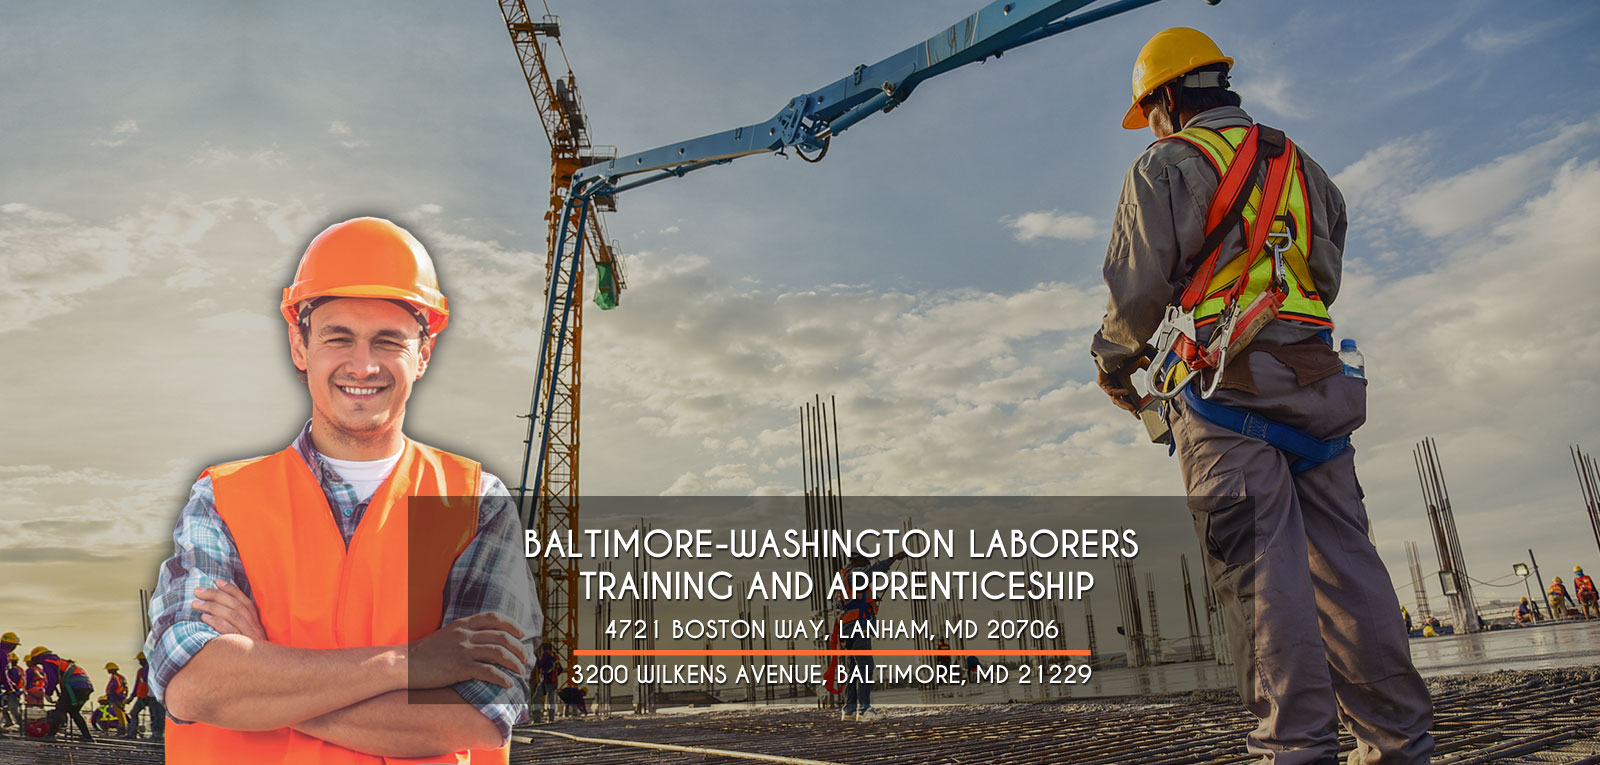 Baltimore-Washington Laborers